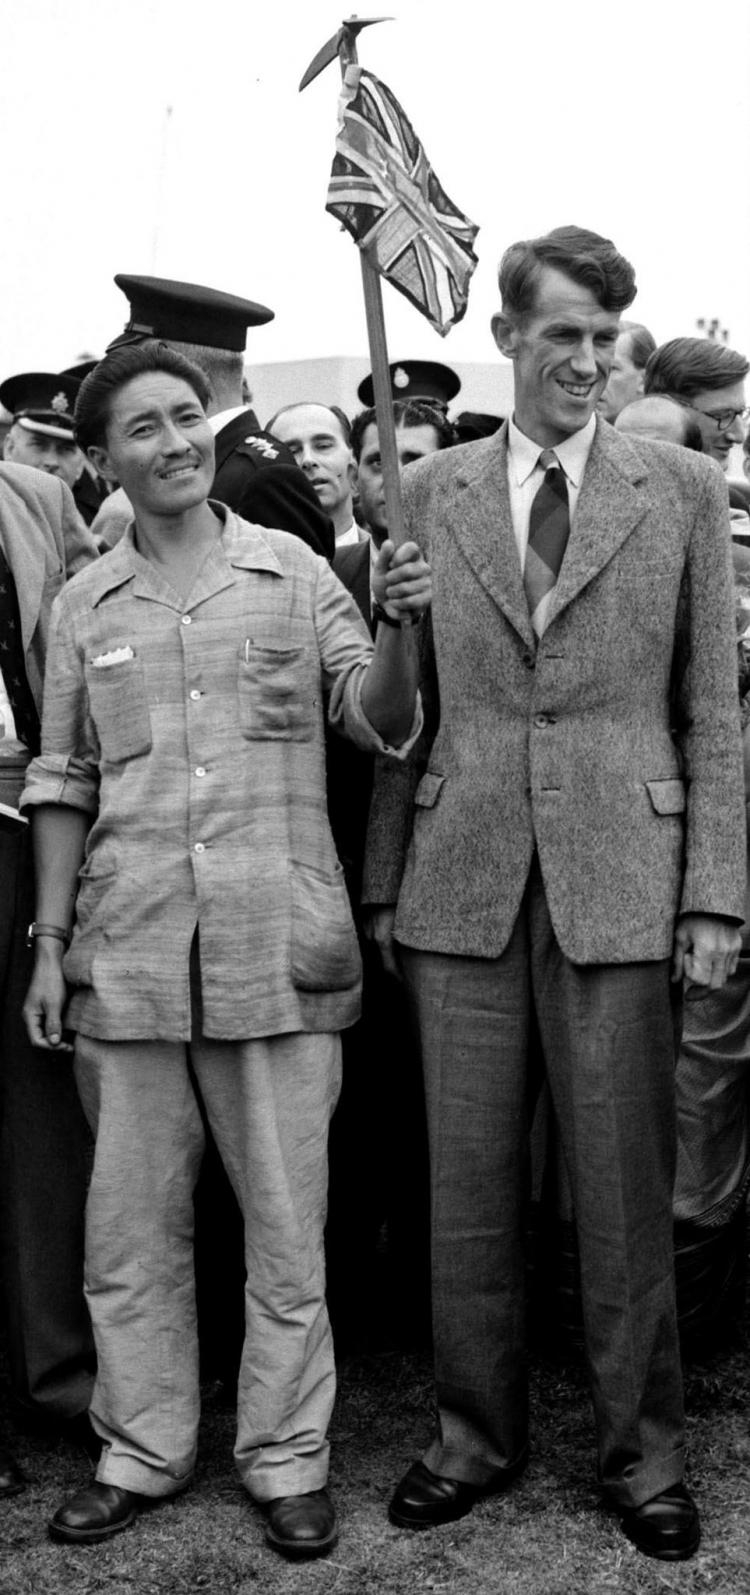 Zdobywcy Mount Everestu - Edmund Hillary (R) i Sherpa Tenzing Norgay (L), 1953 r. Fot. PAP/picture dated 03 July 1953 of Mount Everest conquerors Edmund Hillary (R) and Sherpa Tenzing Norgay (L). Fot. PAP/EPA